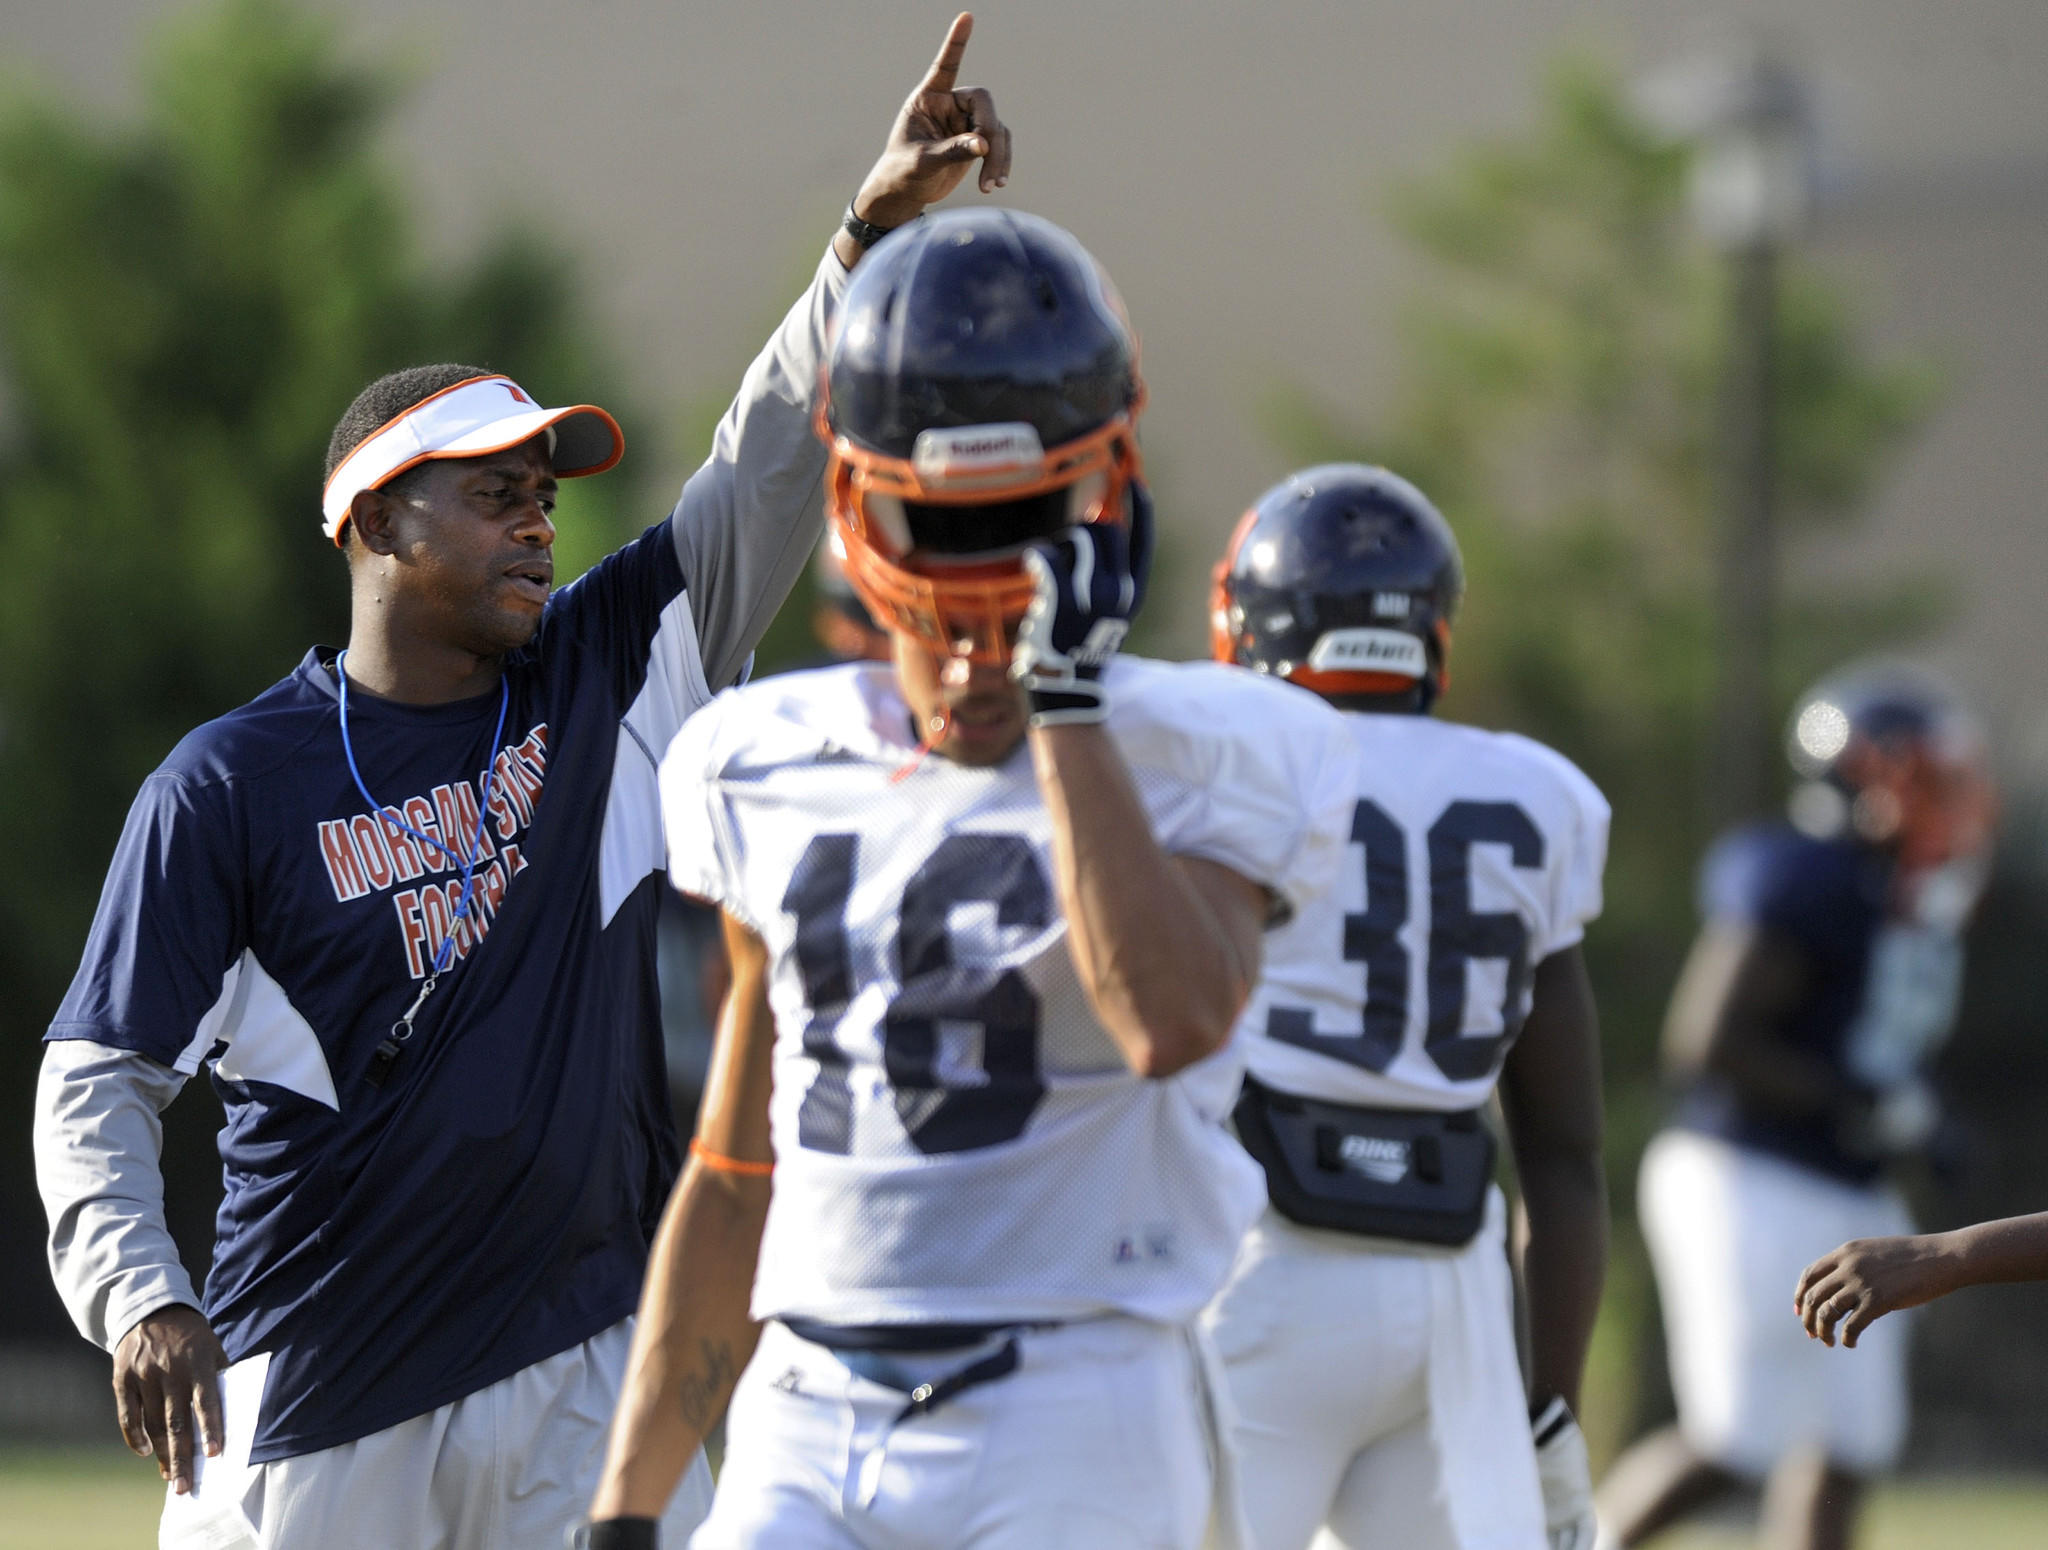 Morgan State coach Lee Hull gestures to his team during a recent practice.